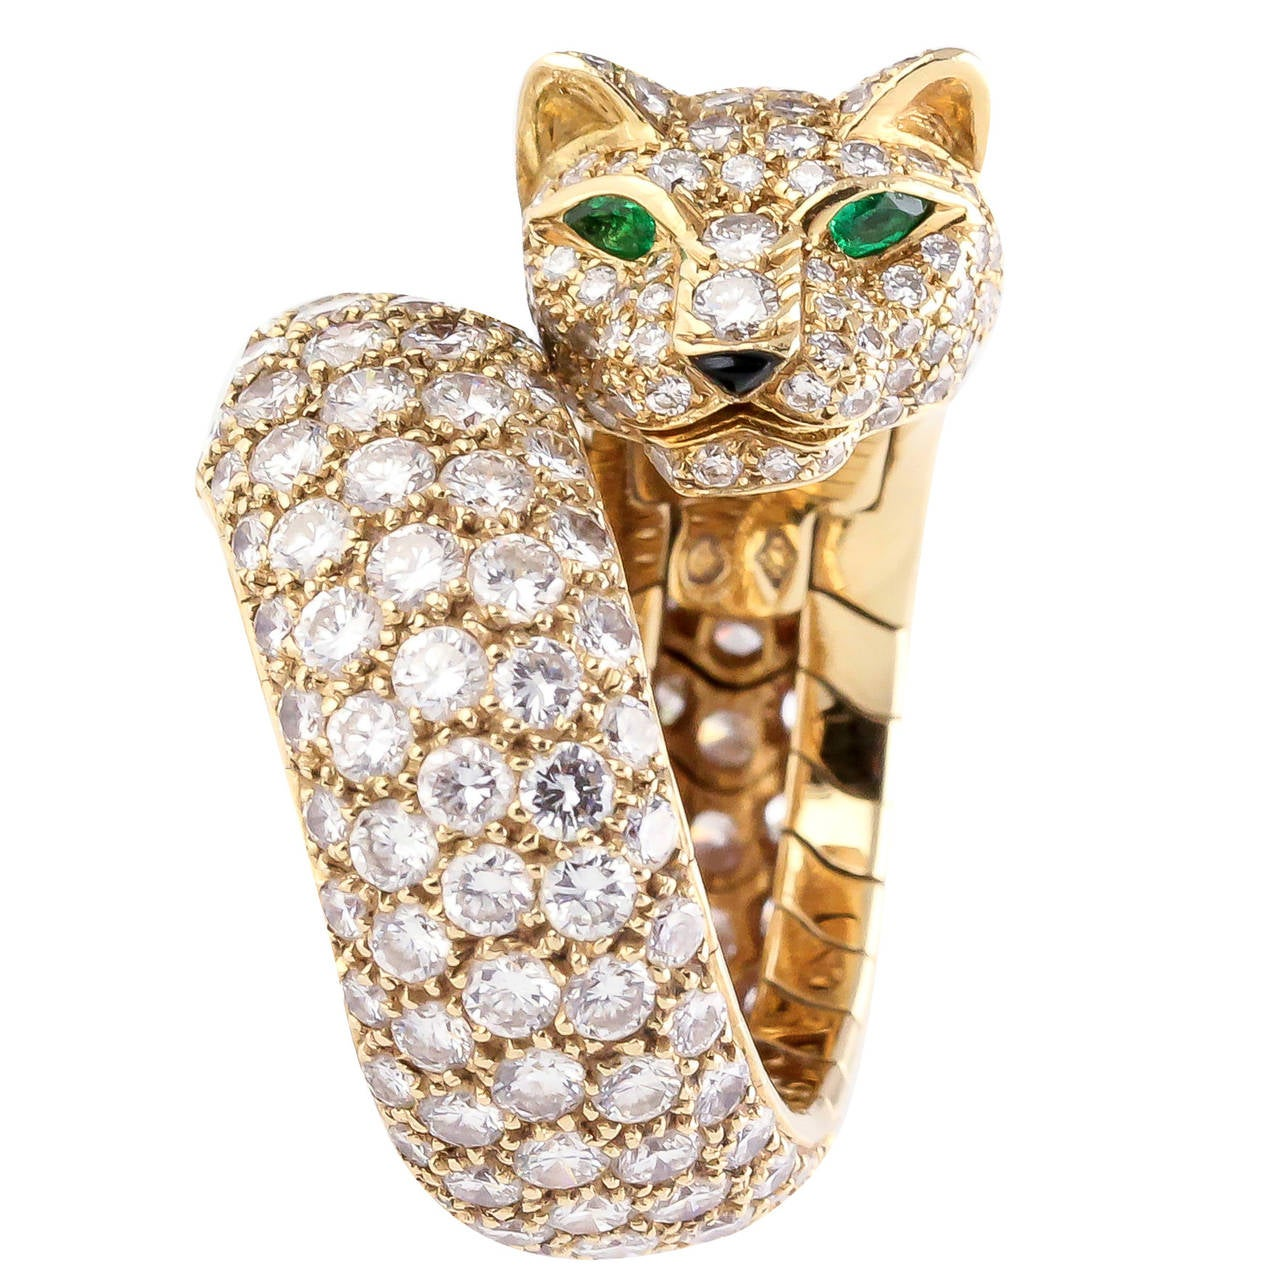 Cartier Panther Diamond Emerald Enamel and Gold Ring at 1stdibs